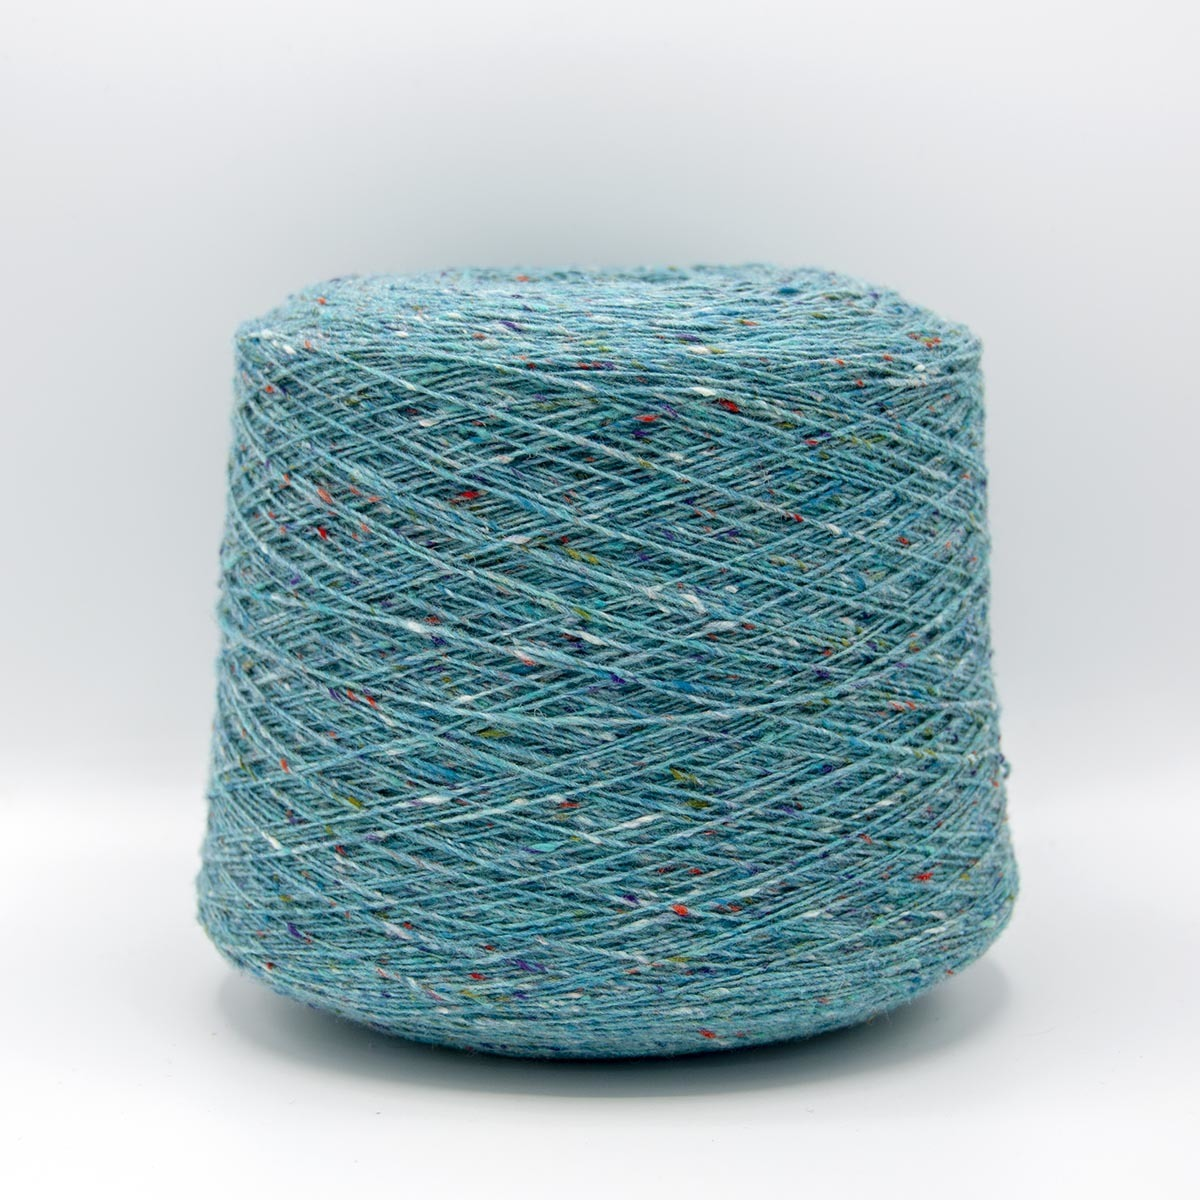 Knoll Yarns Soft Donegal (одинарный твид) - 5572